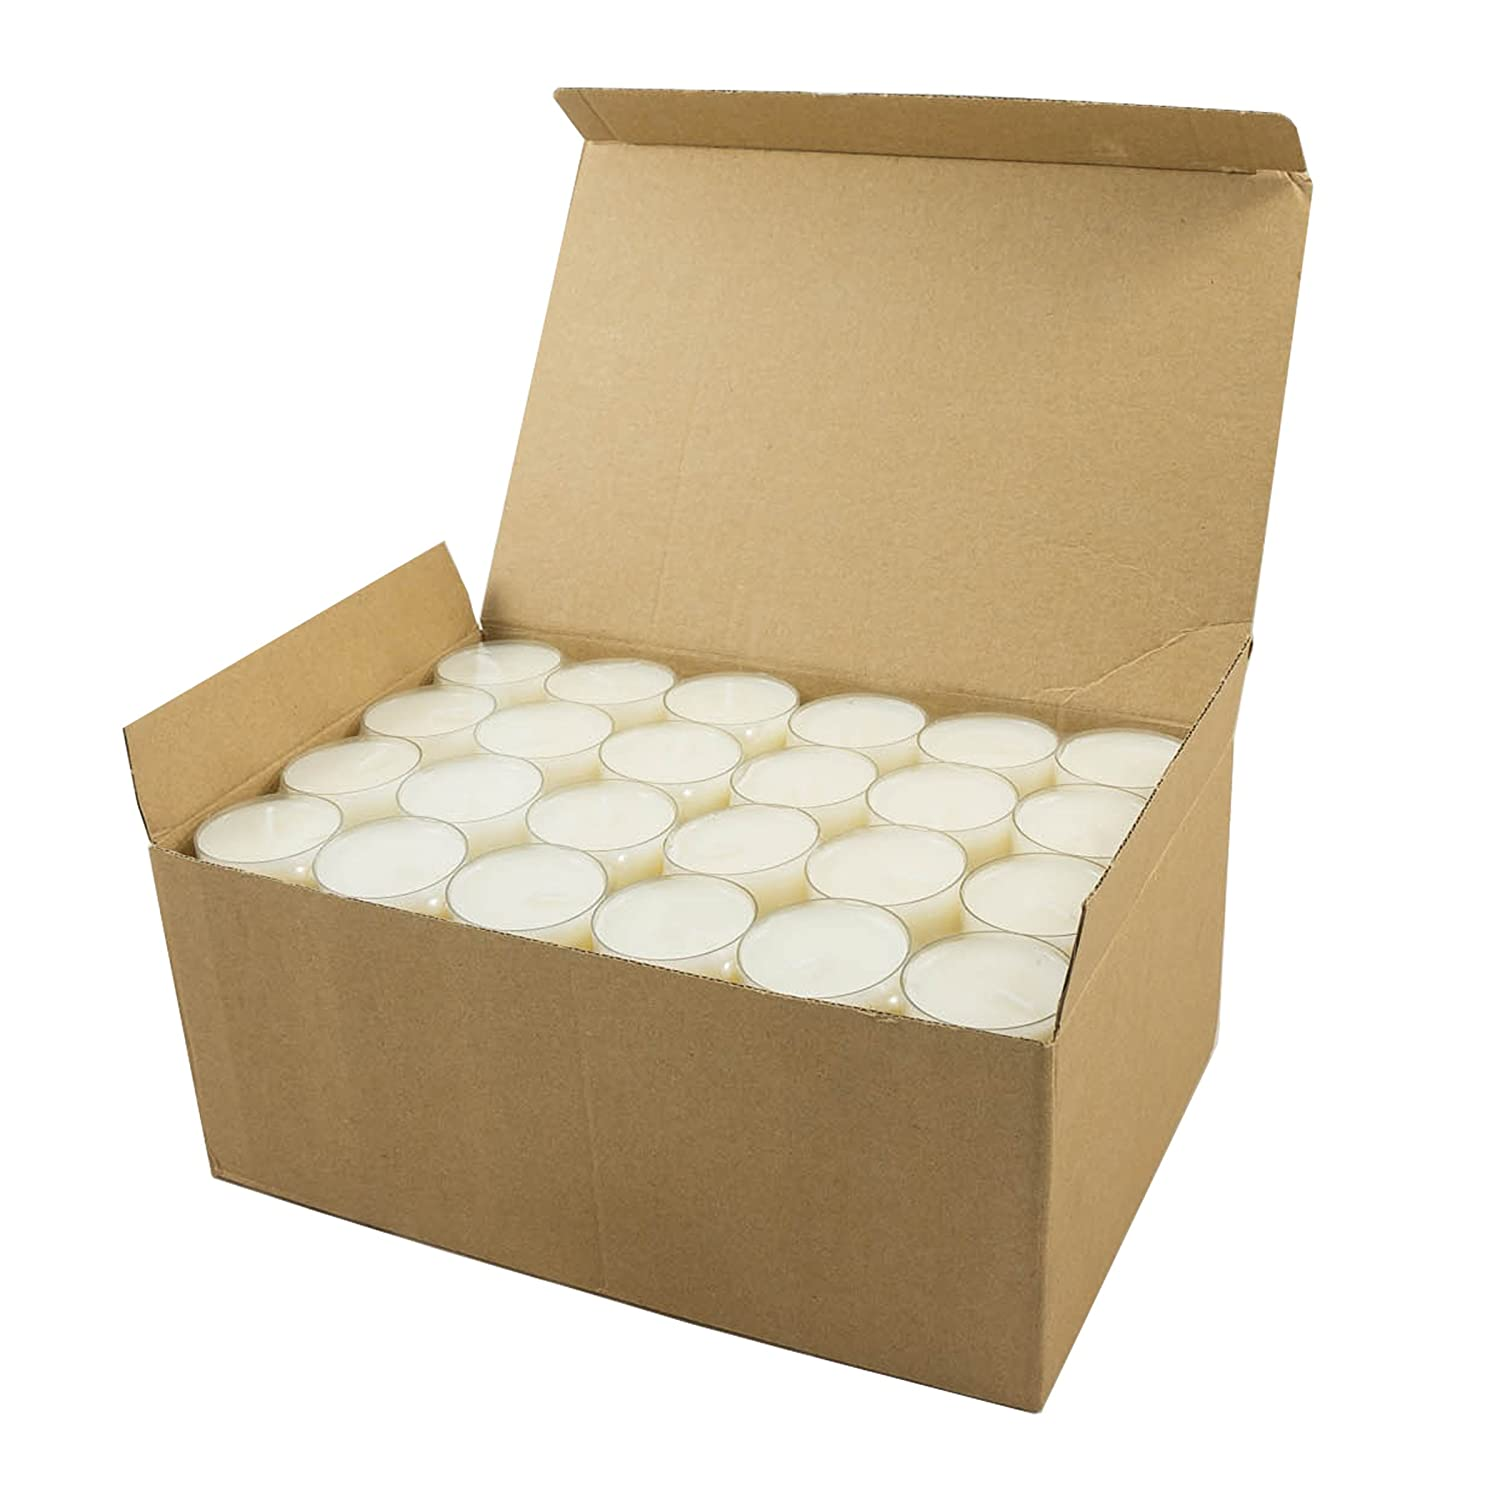 Stonebriar Unscented Long Burning Clear Cup Tea Light Candles, 6 to 7 Hour Extended Burn Time, White, Bulk 96 Pack